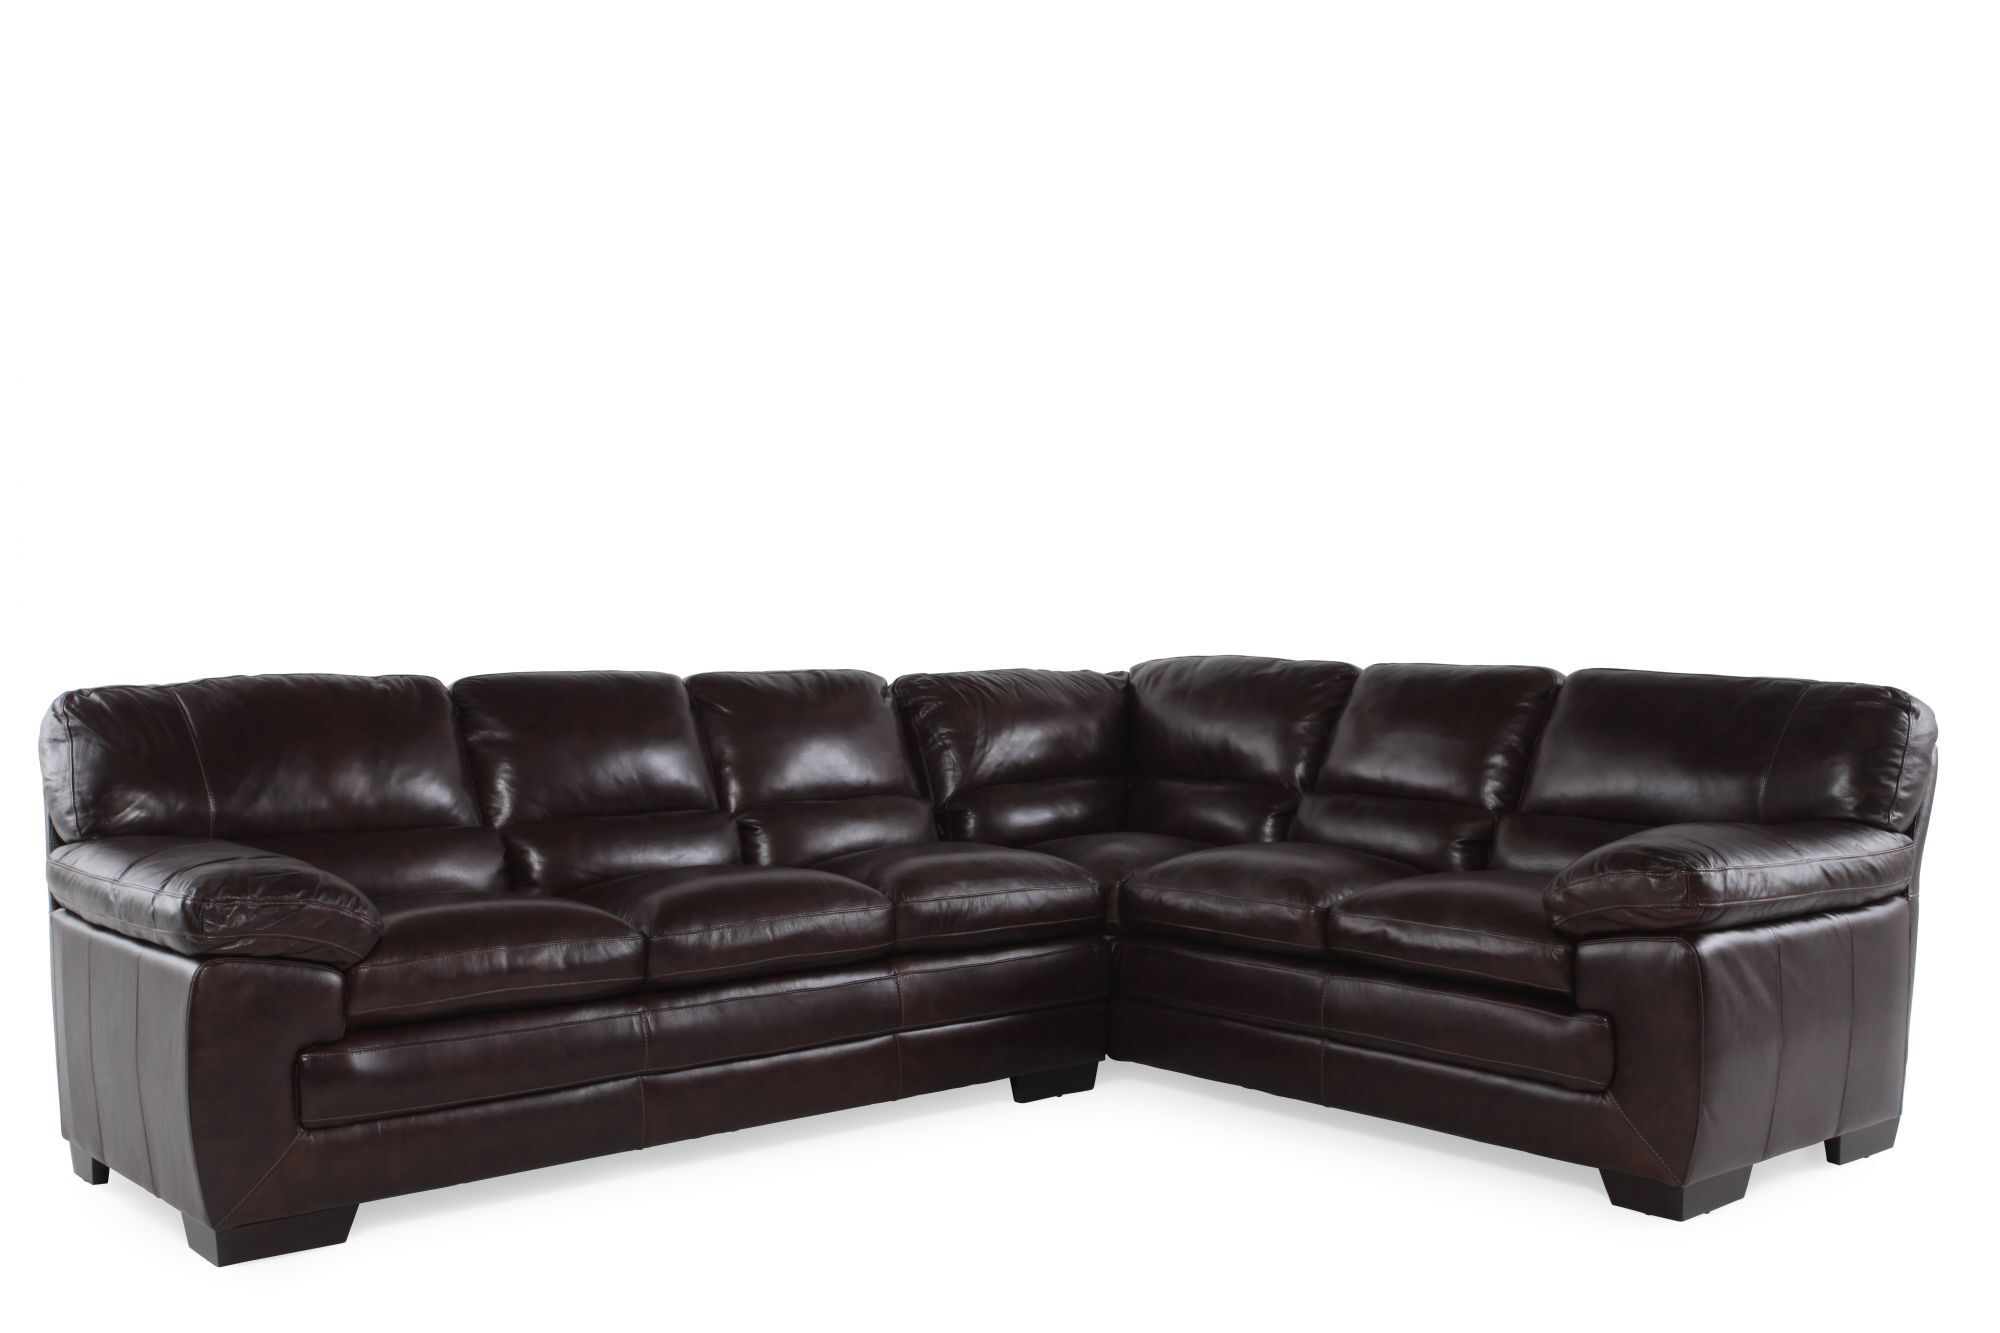 Images Two Piece Leather 96u0026quot; Sectional In Walnut Two Piece Leather  96u0026quot; Sectional In Walnut